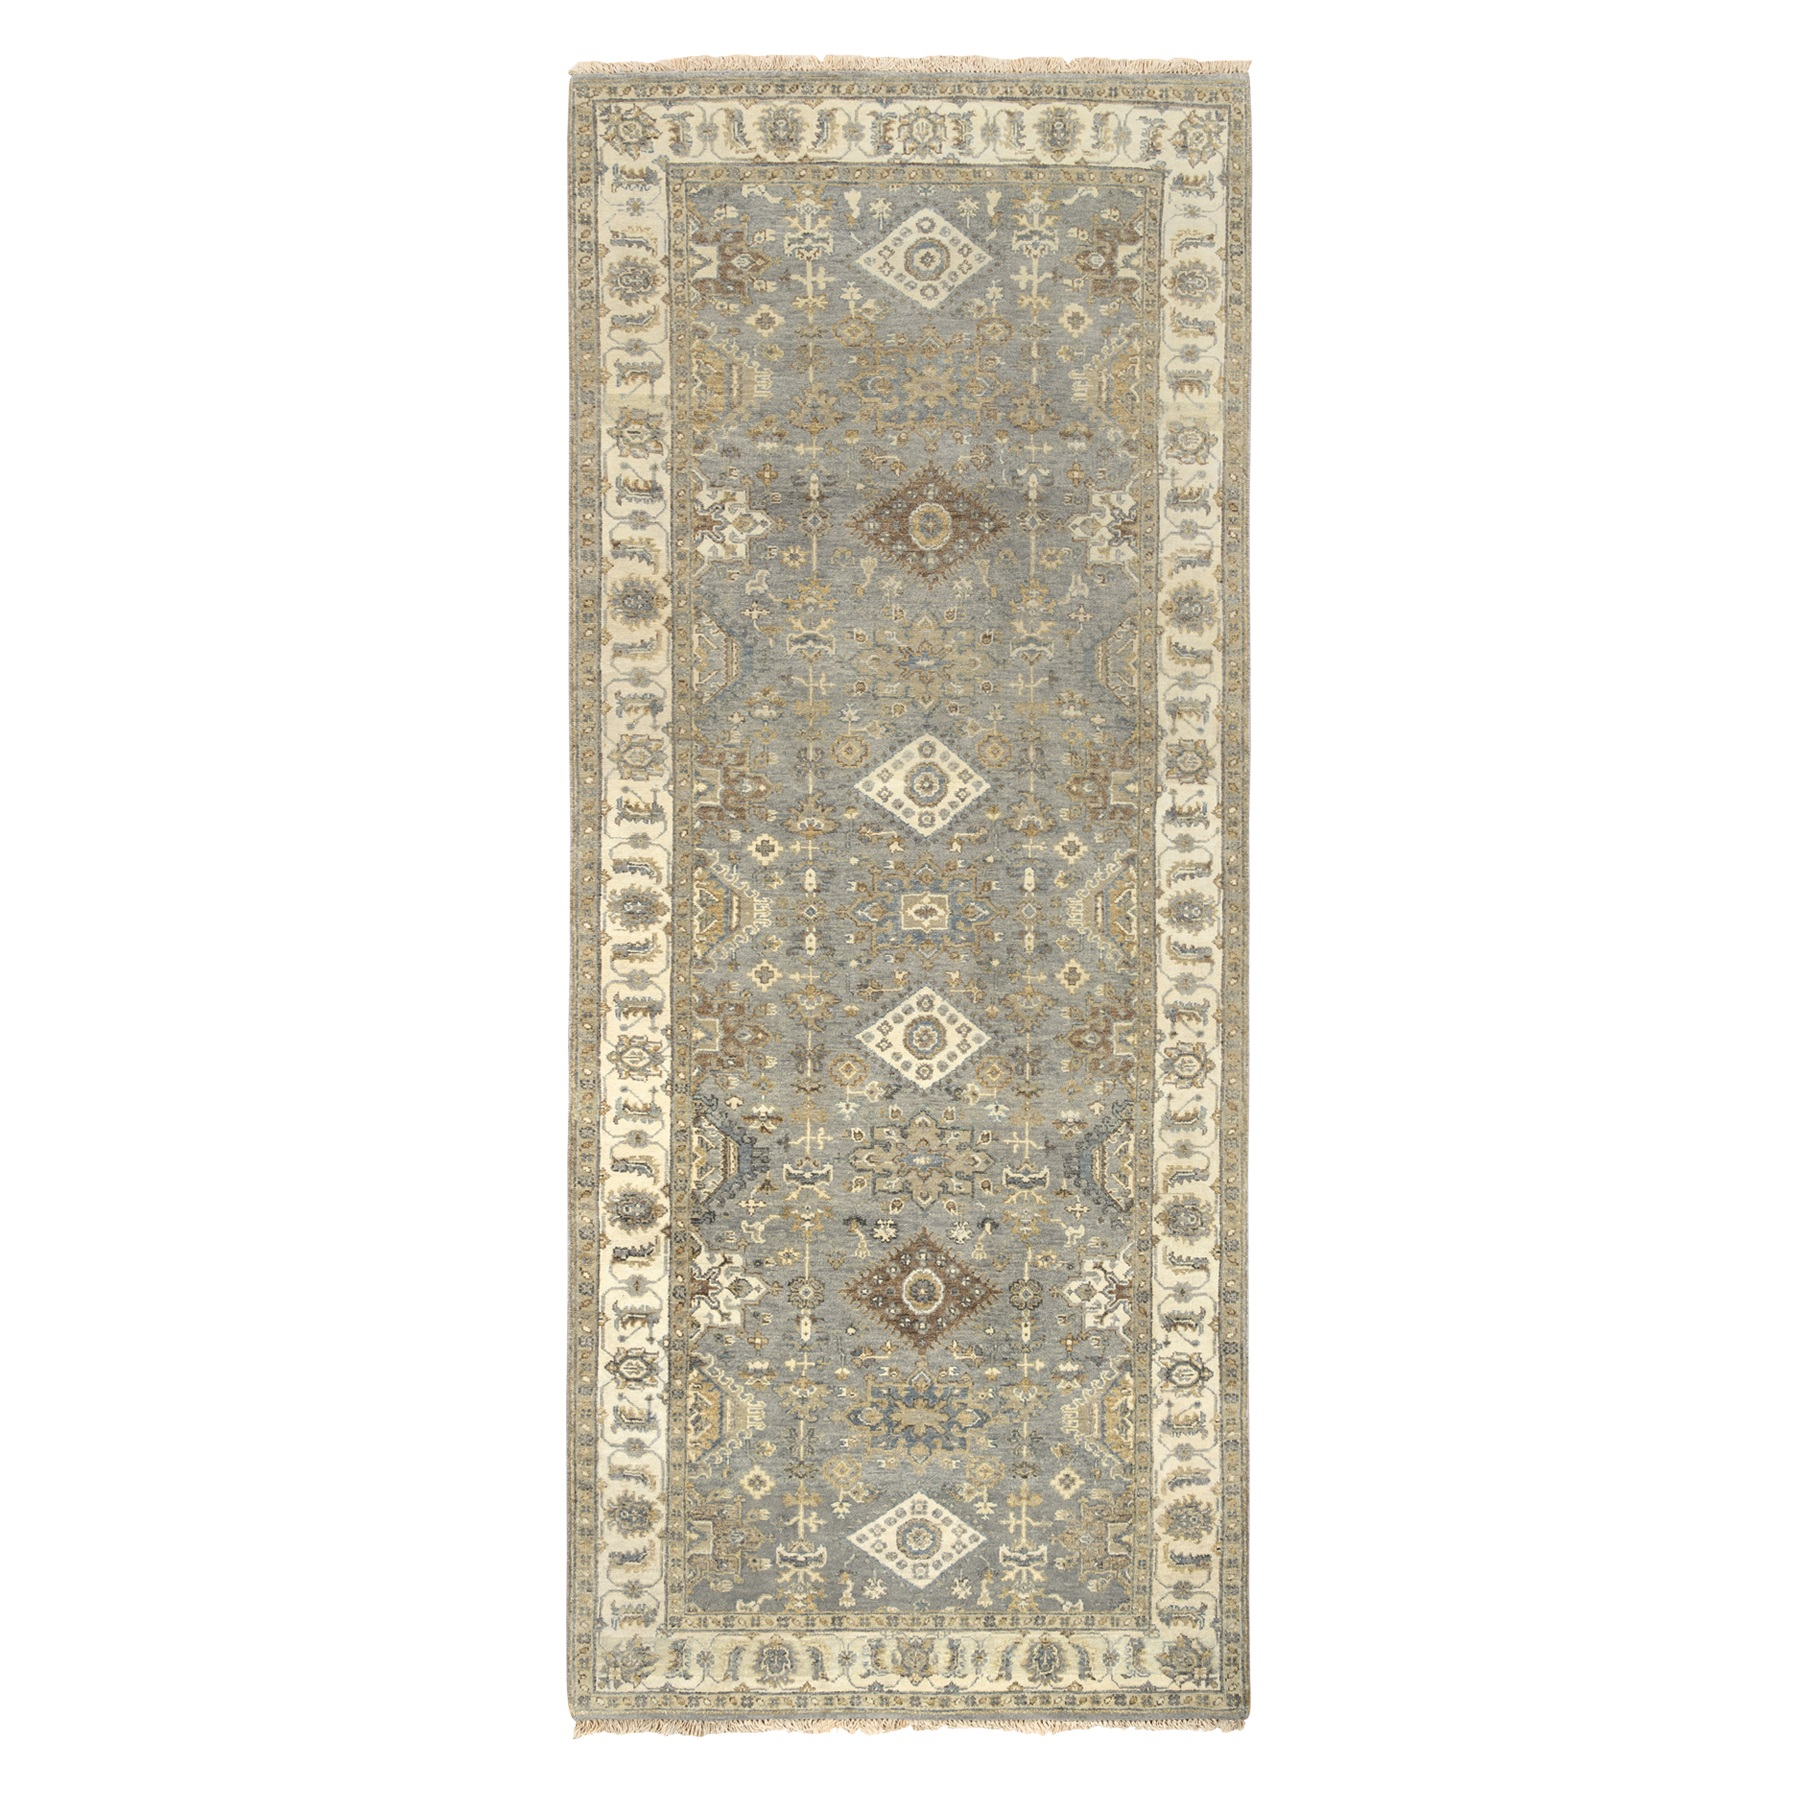 "4'x9'10"" Gray Karajeh Design Pure Wool Hand Knotted Runner Rug"